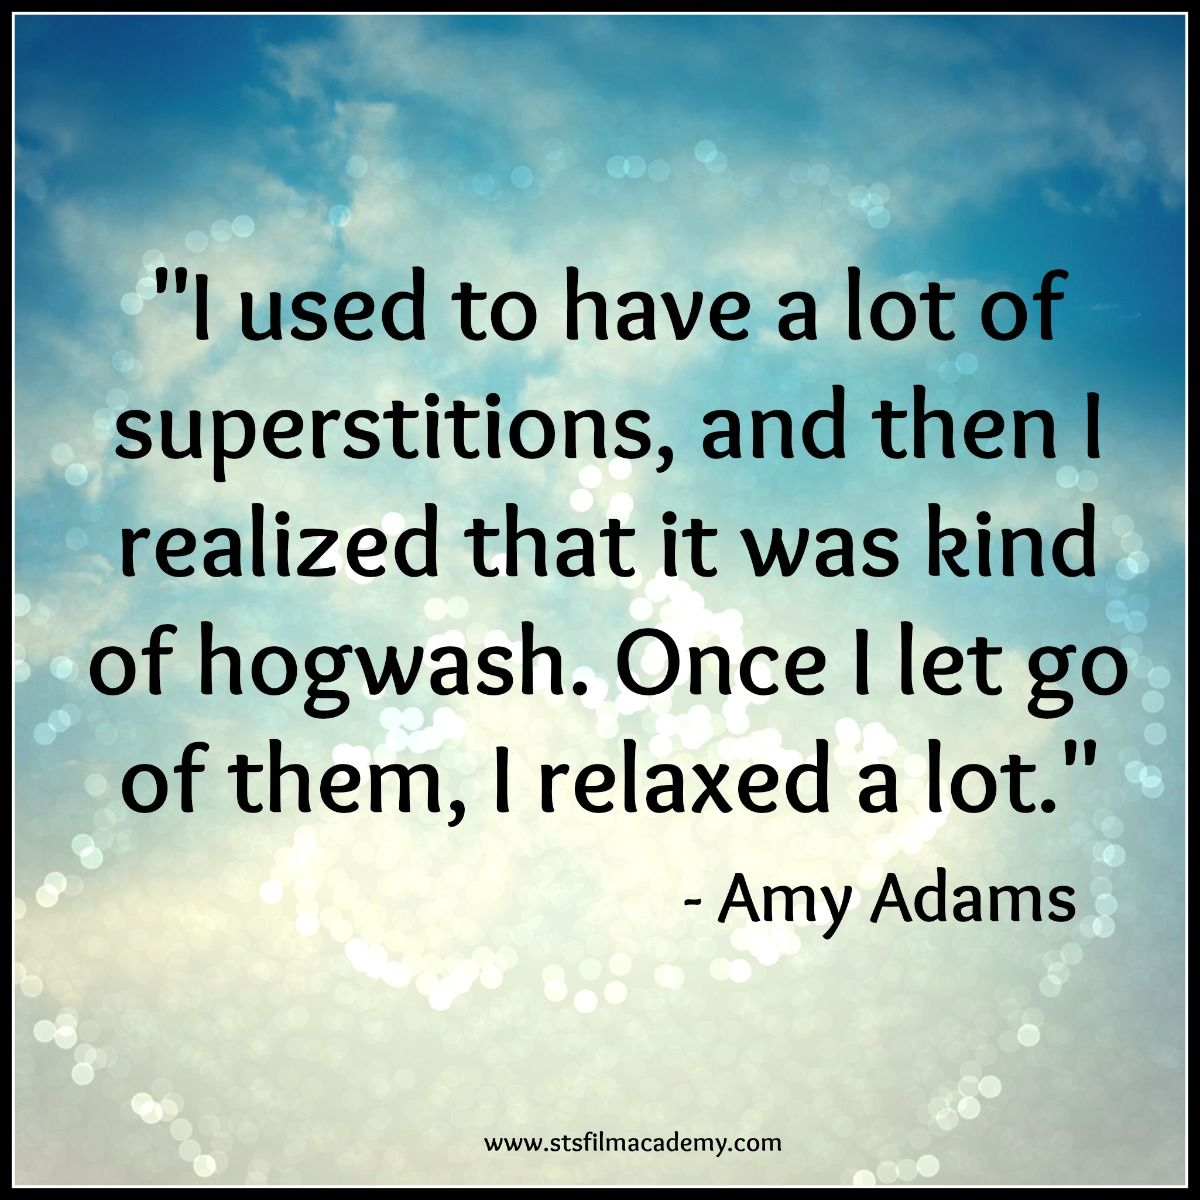 Amy Adams Quote Education Quotes Amy Adams Quotes